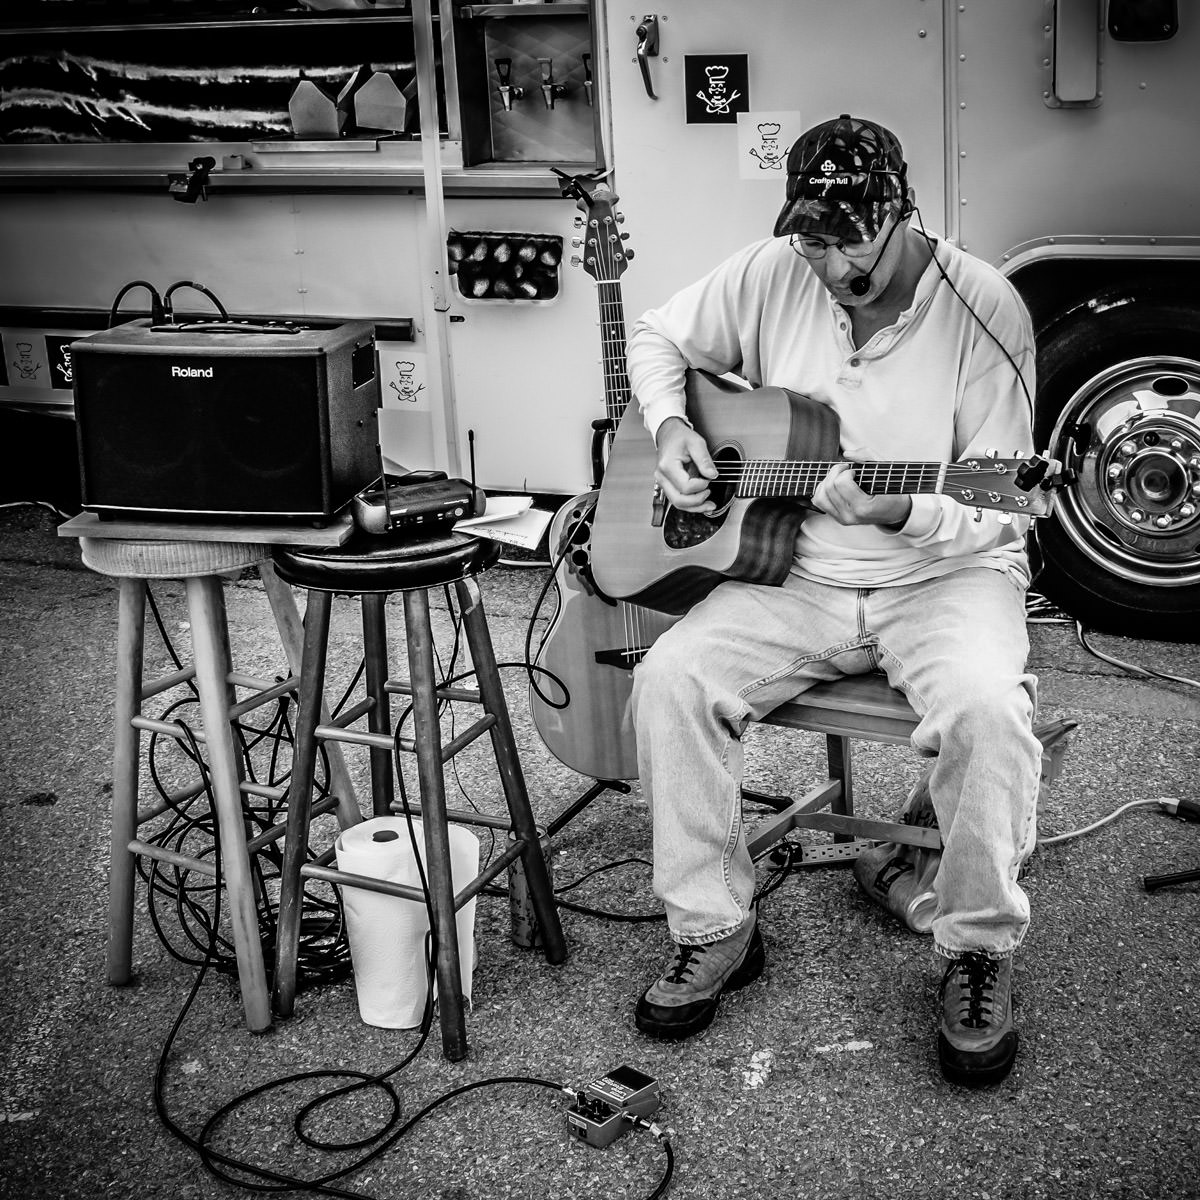 A musician plays his guitar at the Dallas Food Truck Festival.